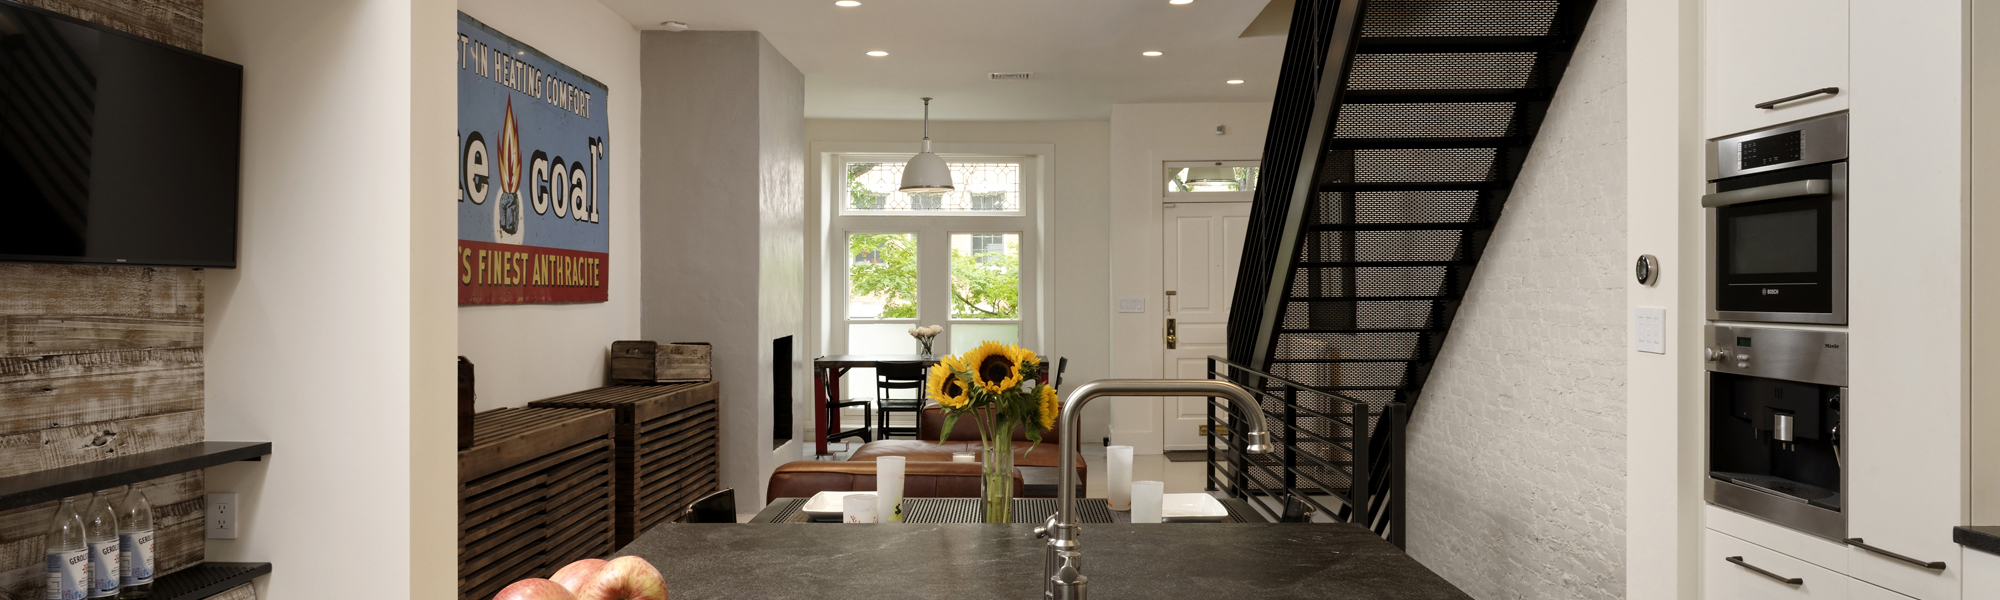 Industrial Chic Row Home Renovation In Dupont Circle, DC | BOWA